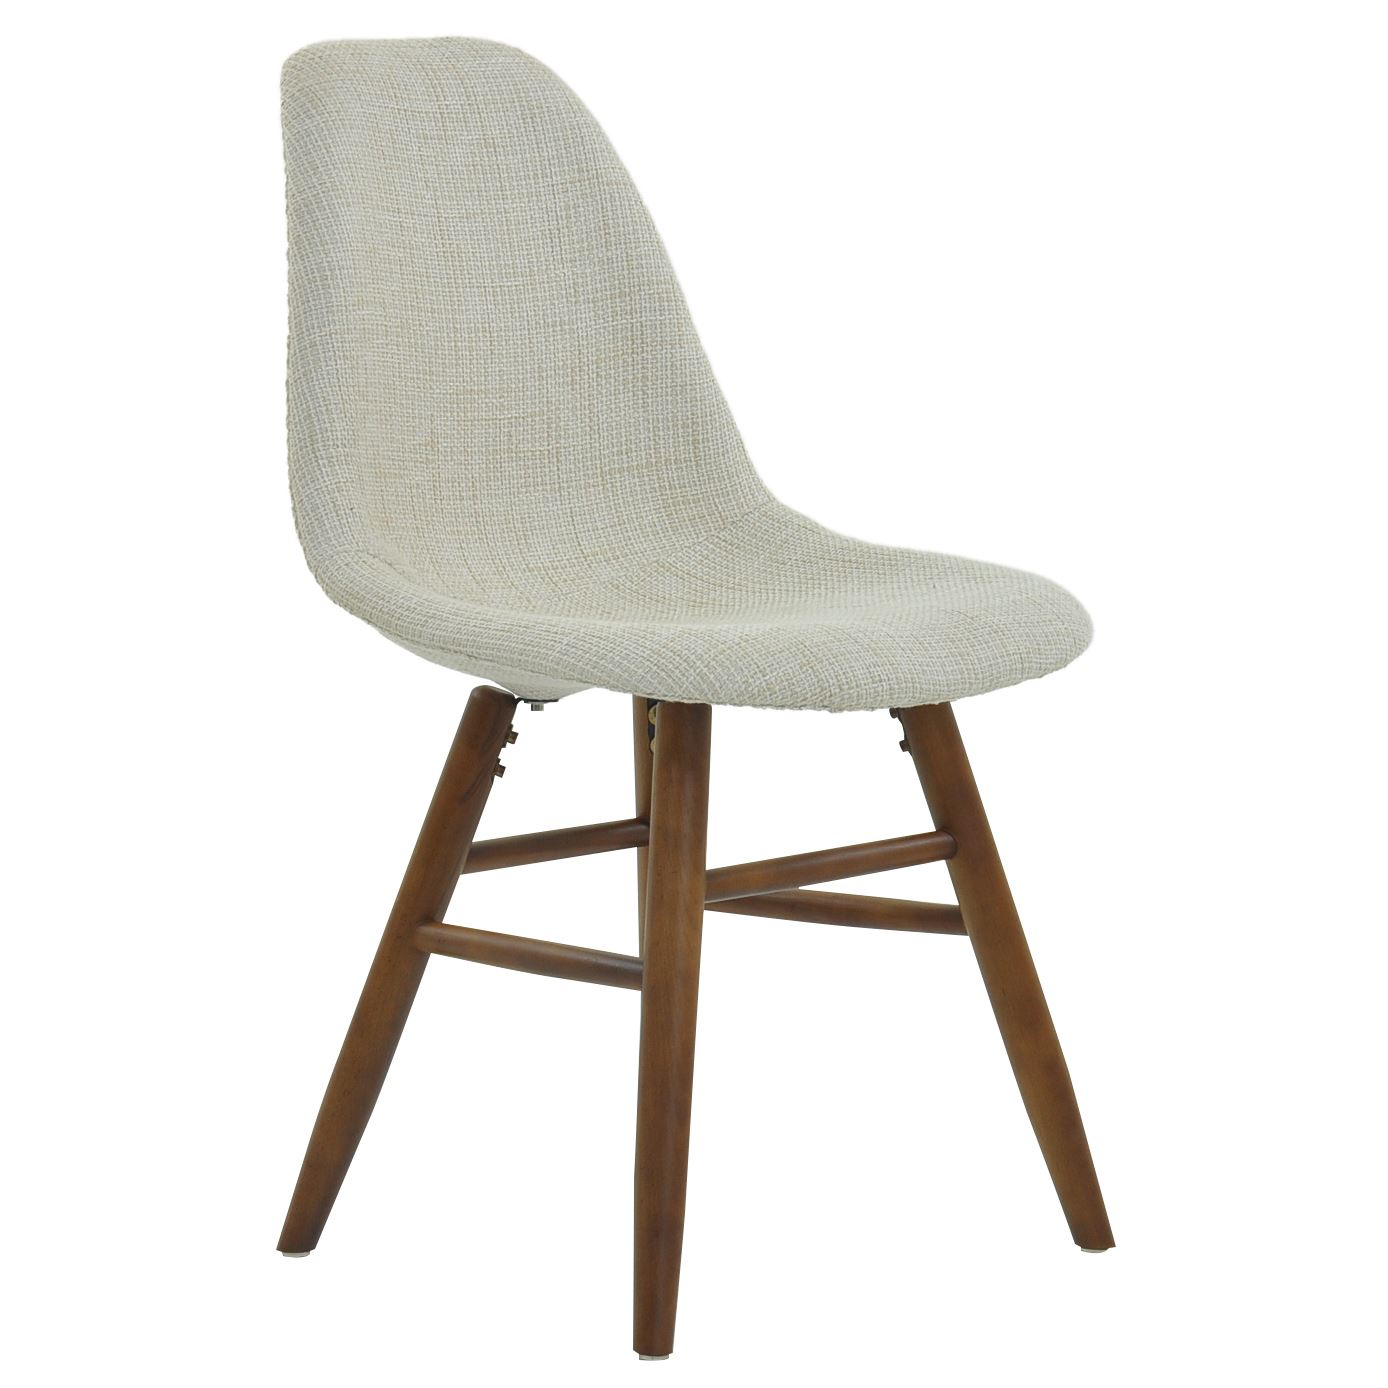 Grw Plastic Dining Chair With Walnut Colour Leg Ebay